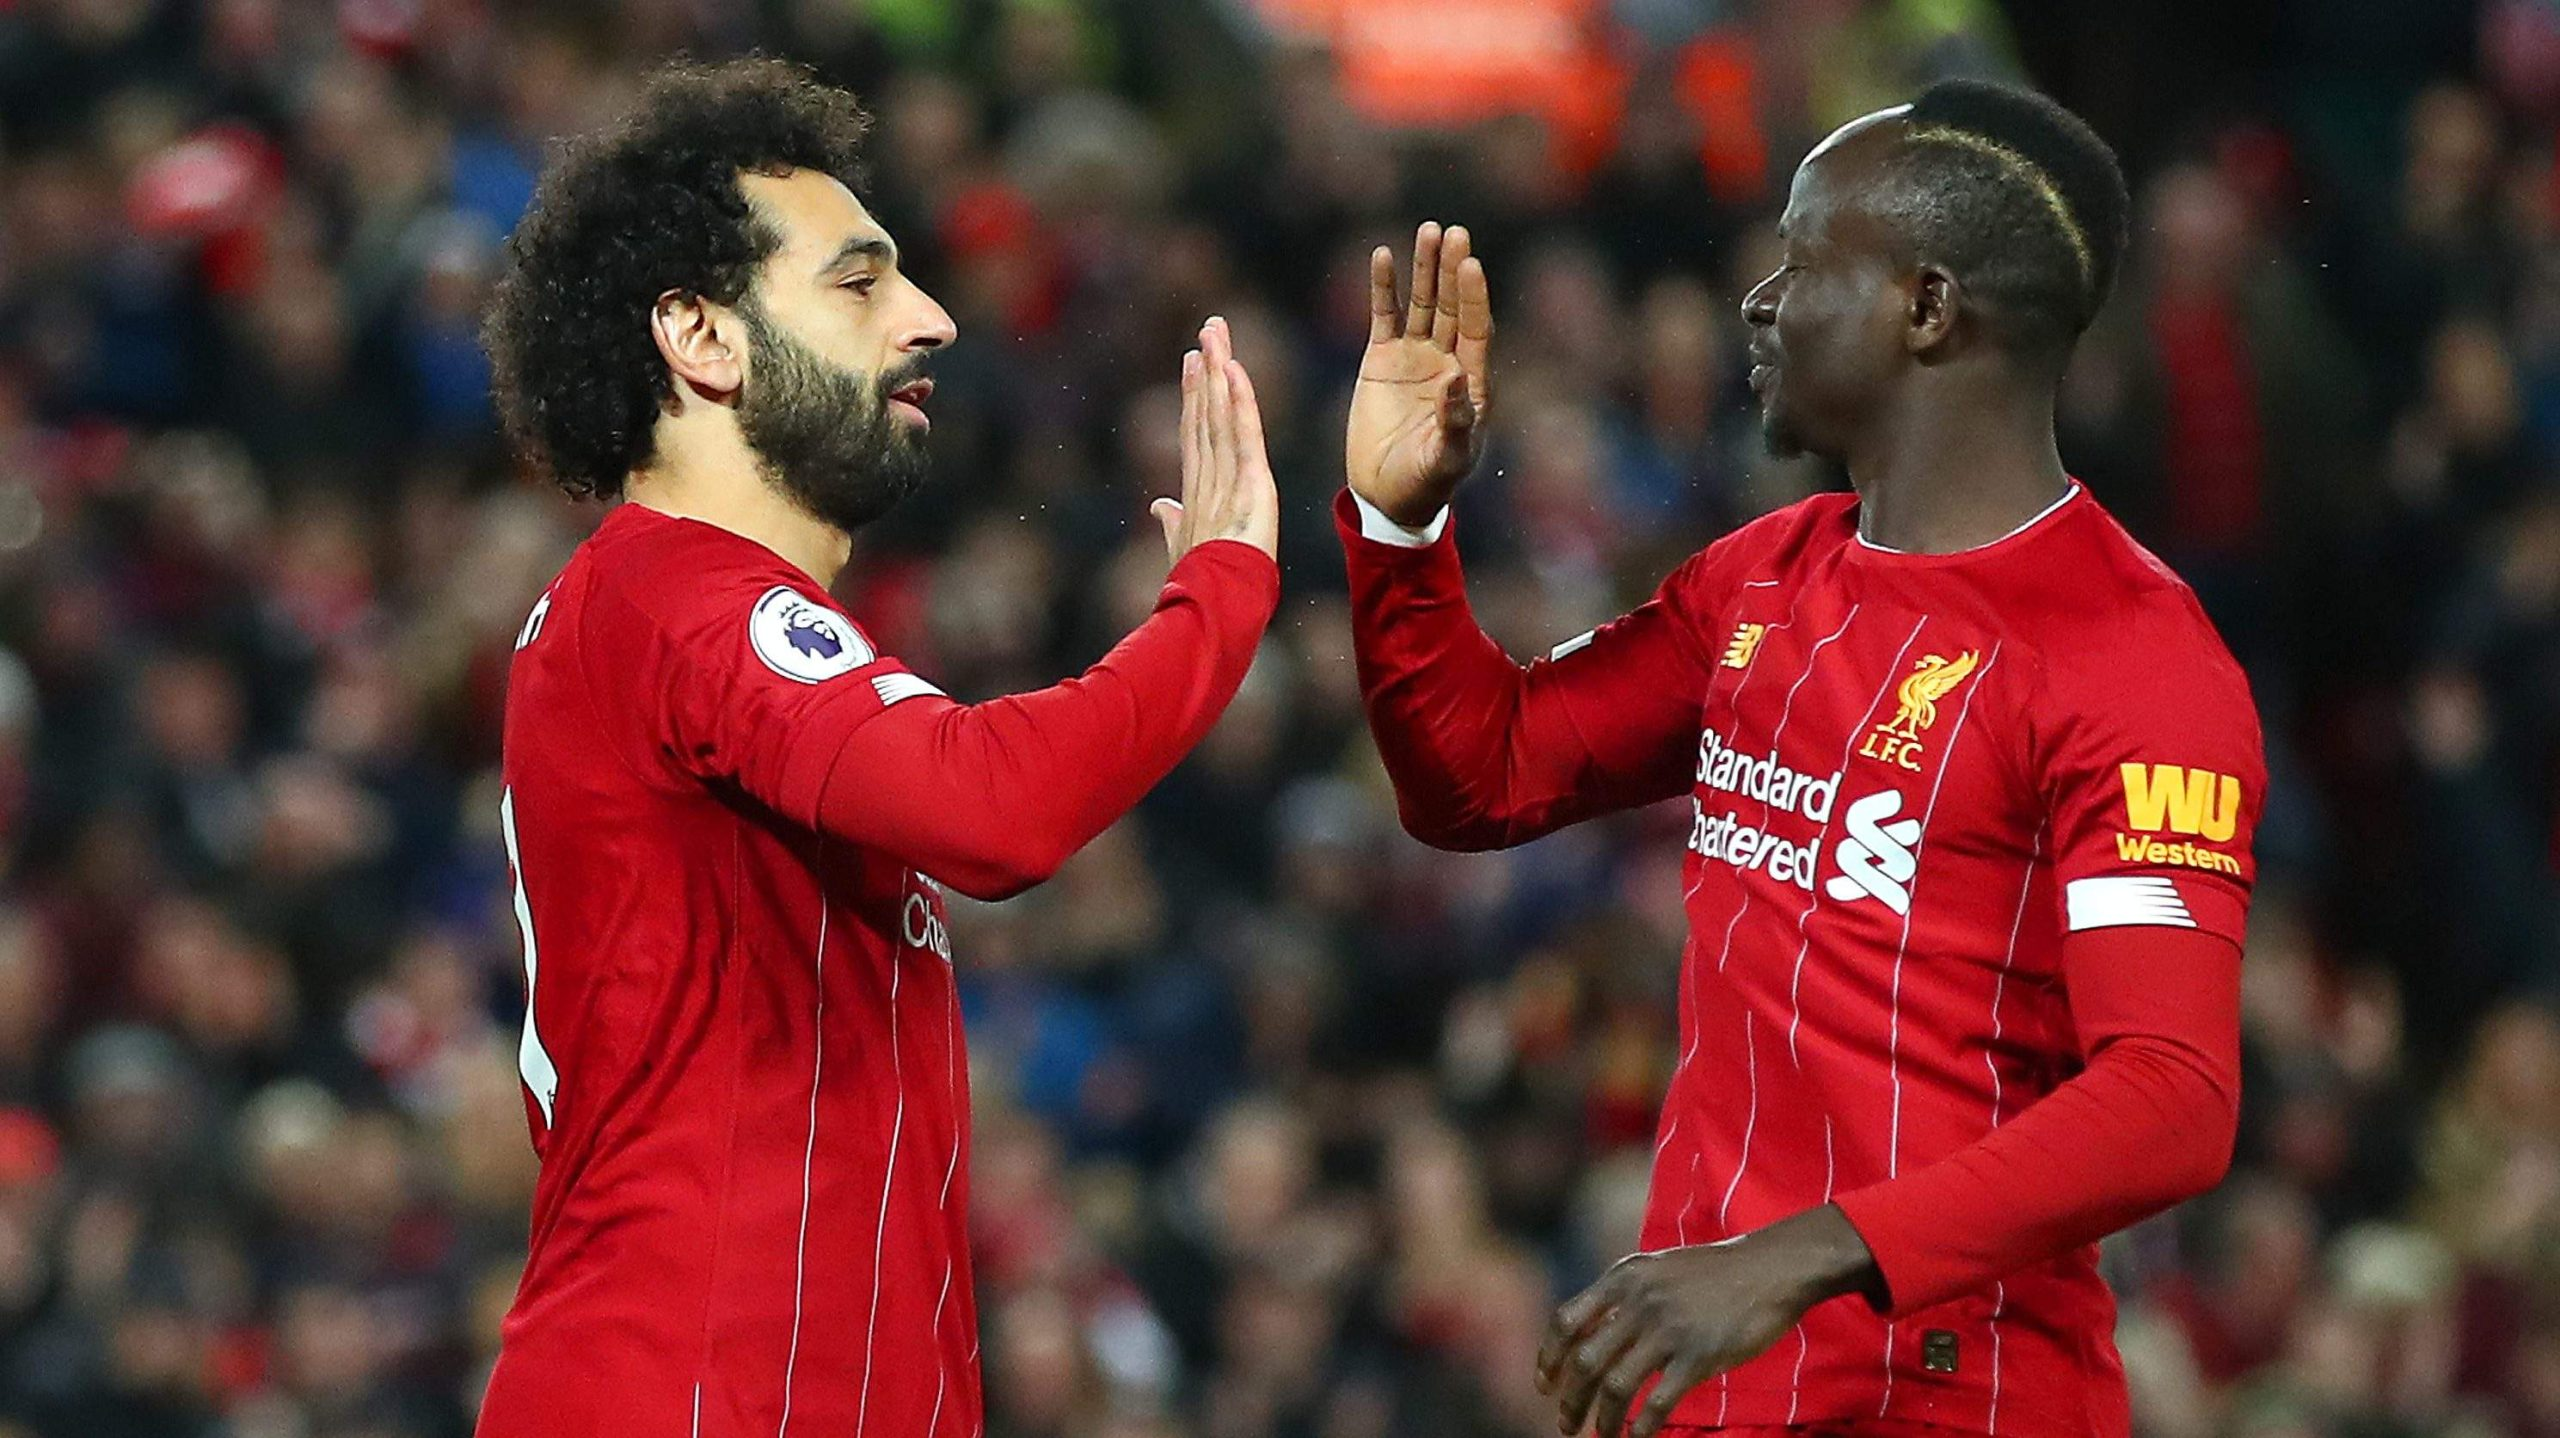 liverpool-vs-everton-fa-cup-live-stream:-how-to-watch-in-usa